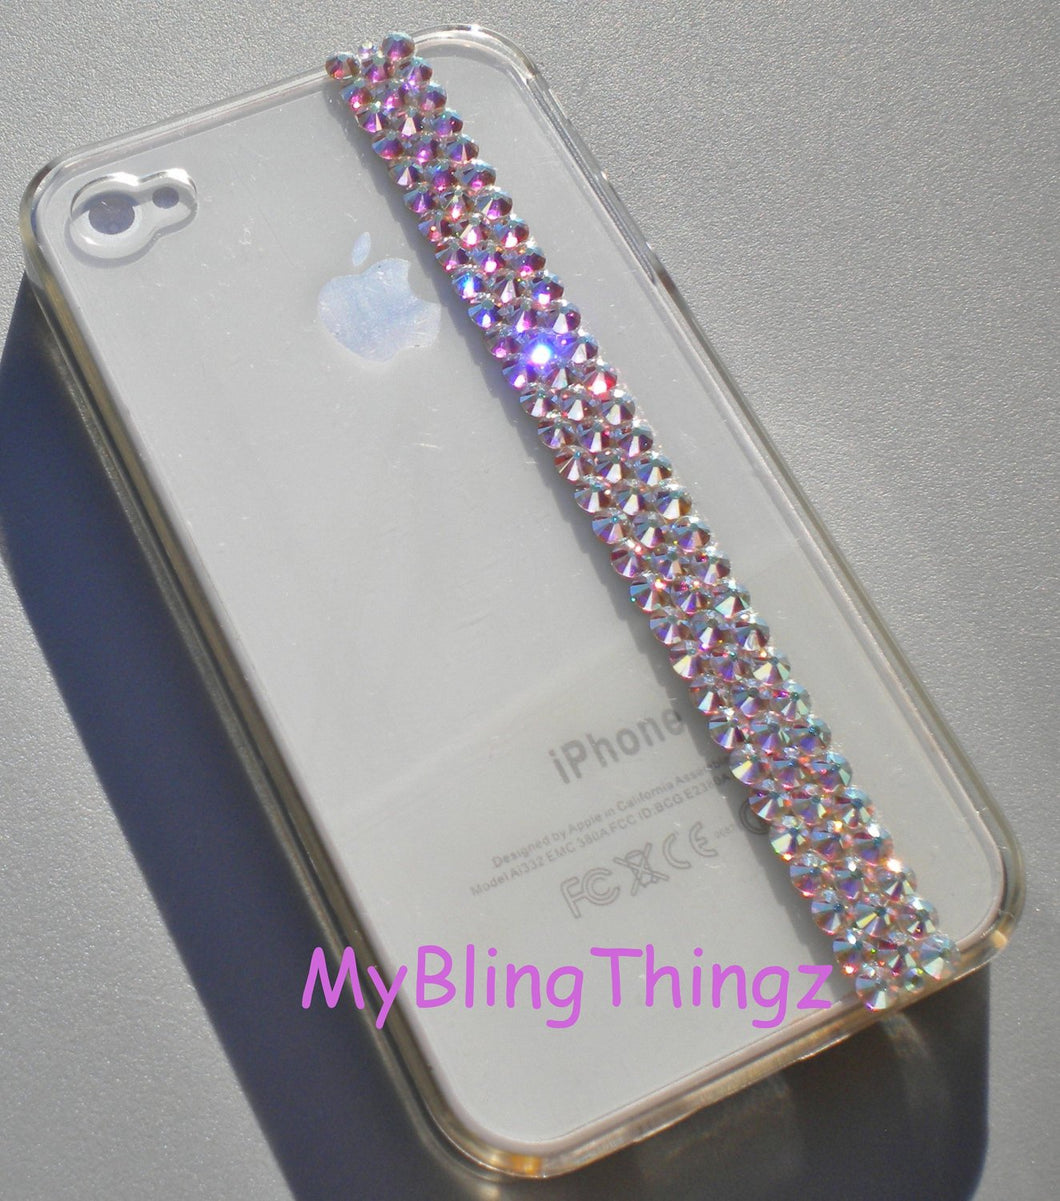 For New iPhone 6 (4.7) ~ Crystal AB - Aurora Borealis - Rhinestone Bling Back Case handmade using Crystals from Swarovski